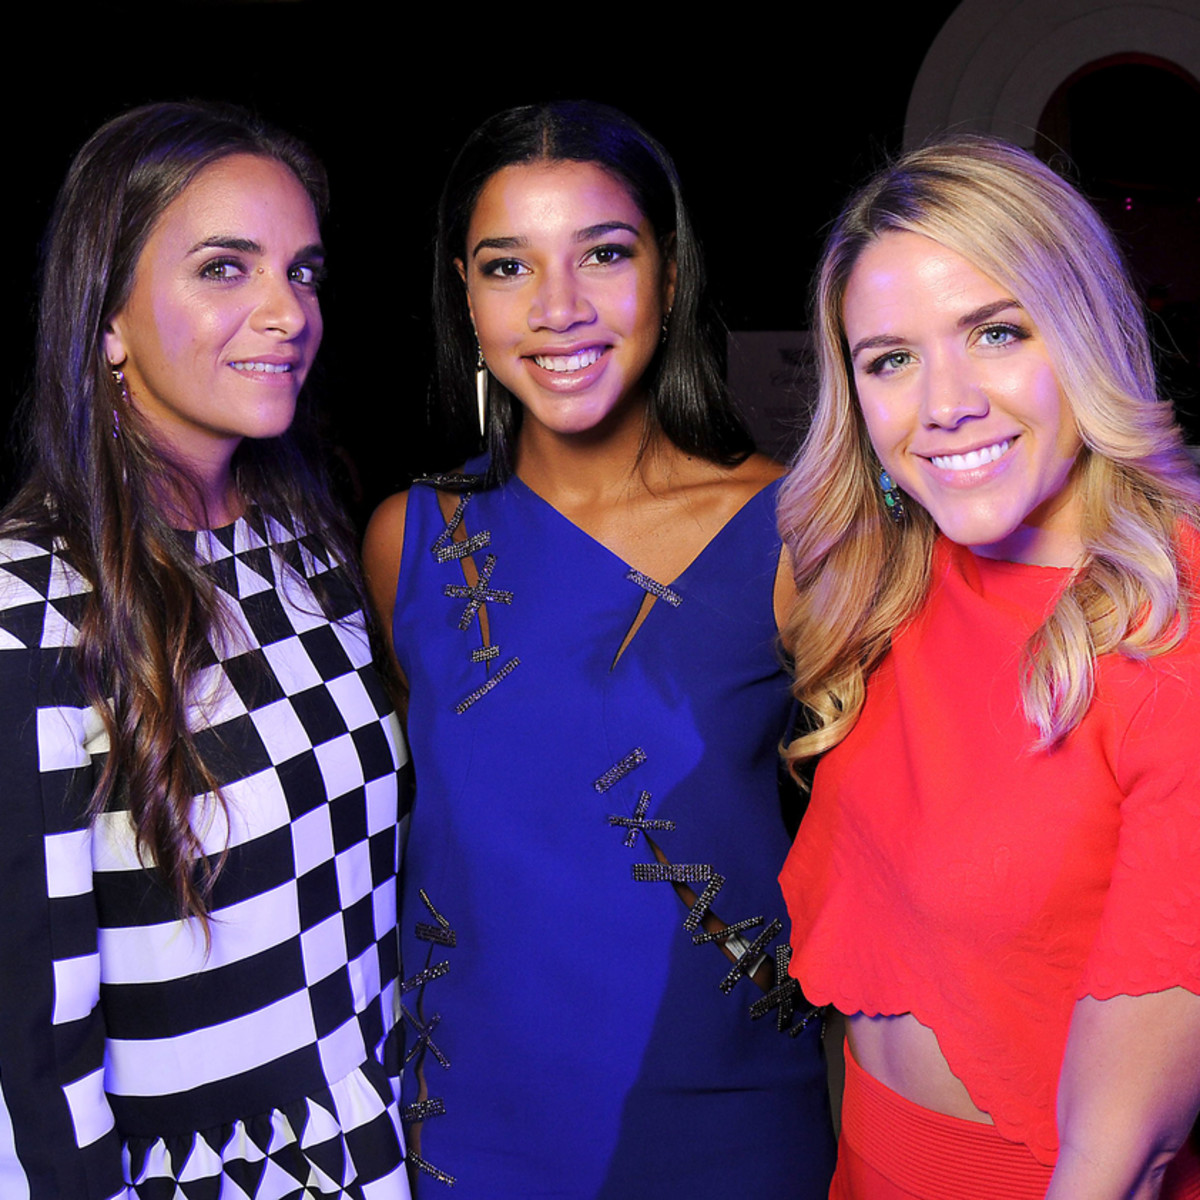 Houston, Vogue Simon Fashion Show, September 2015, Laure Heriard-Dubreuil, Hannah Bronfman, Cara Crowley